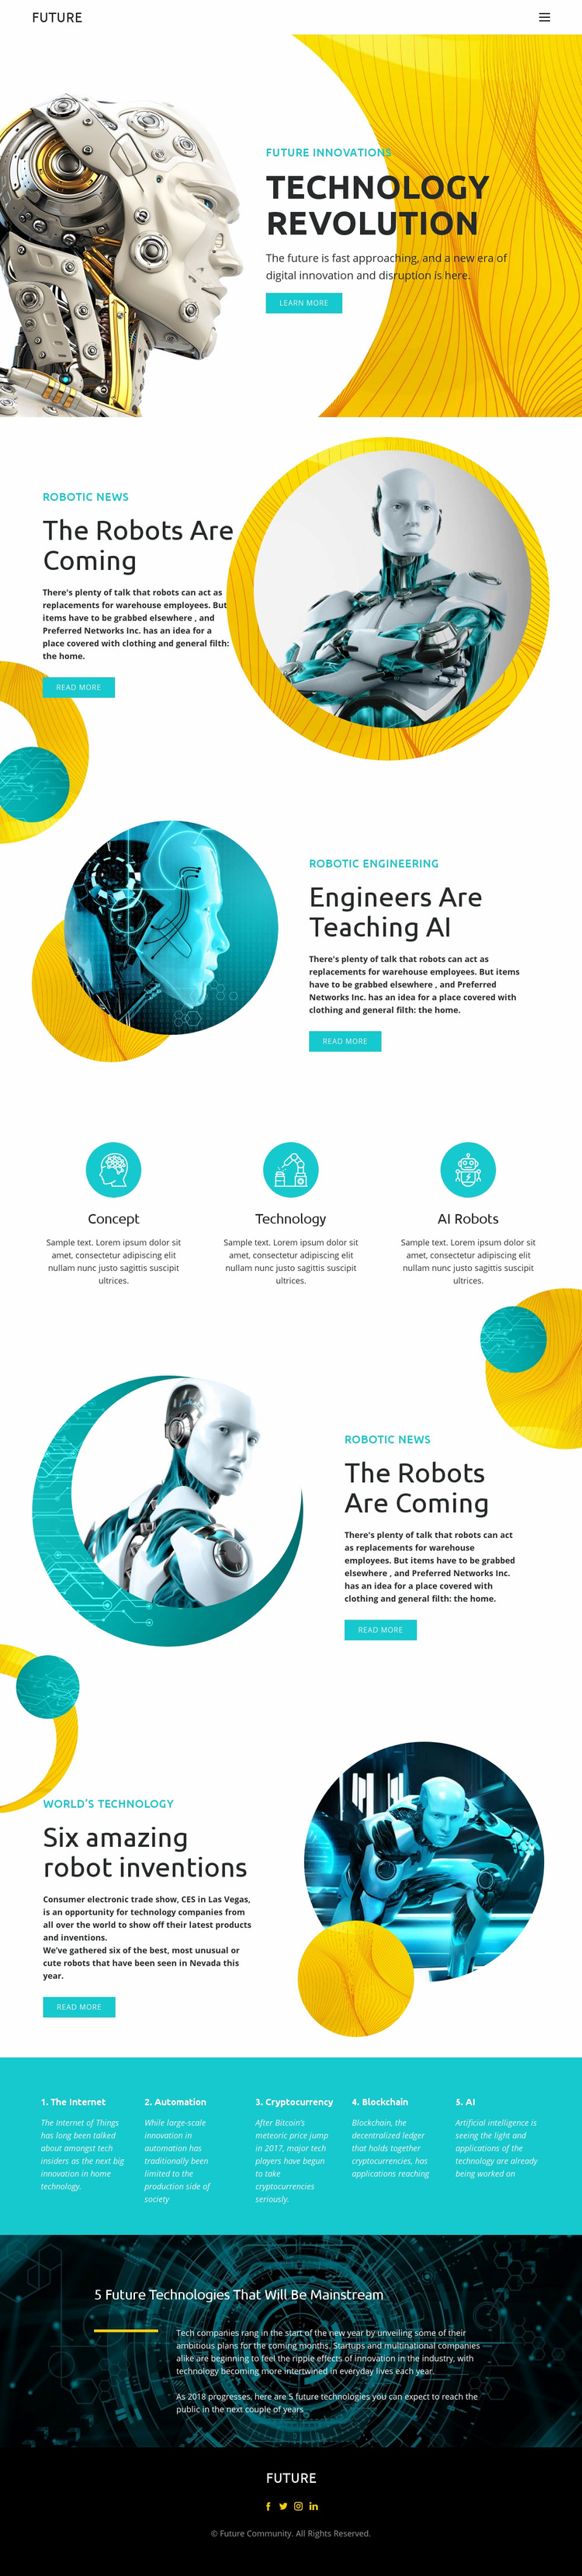 Progress in robot technology  Web Page Design